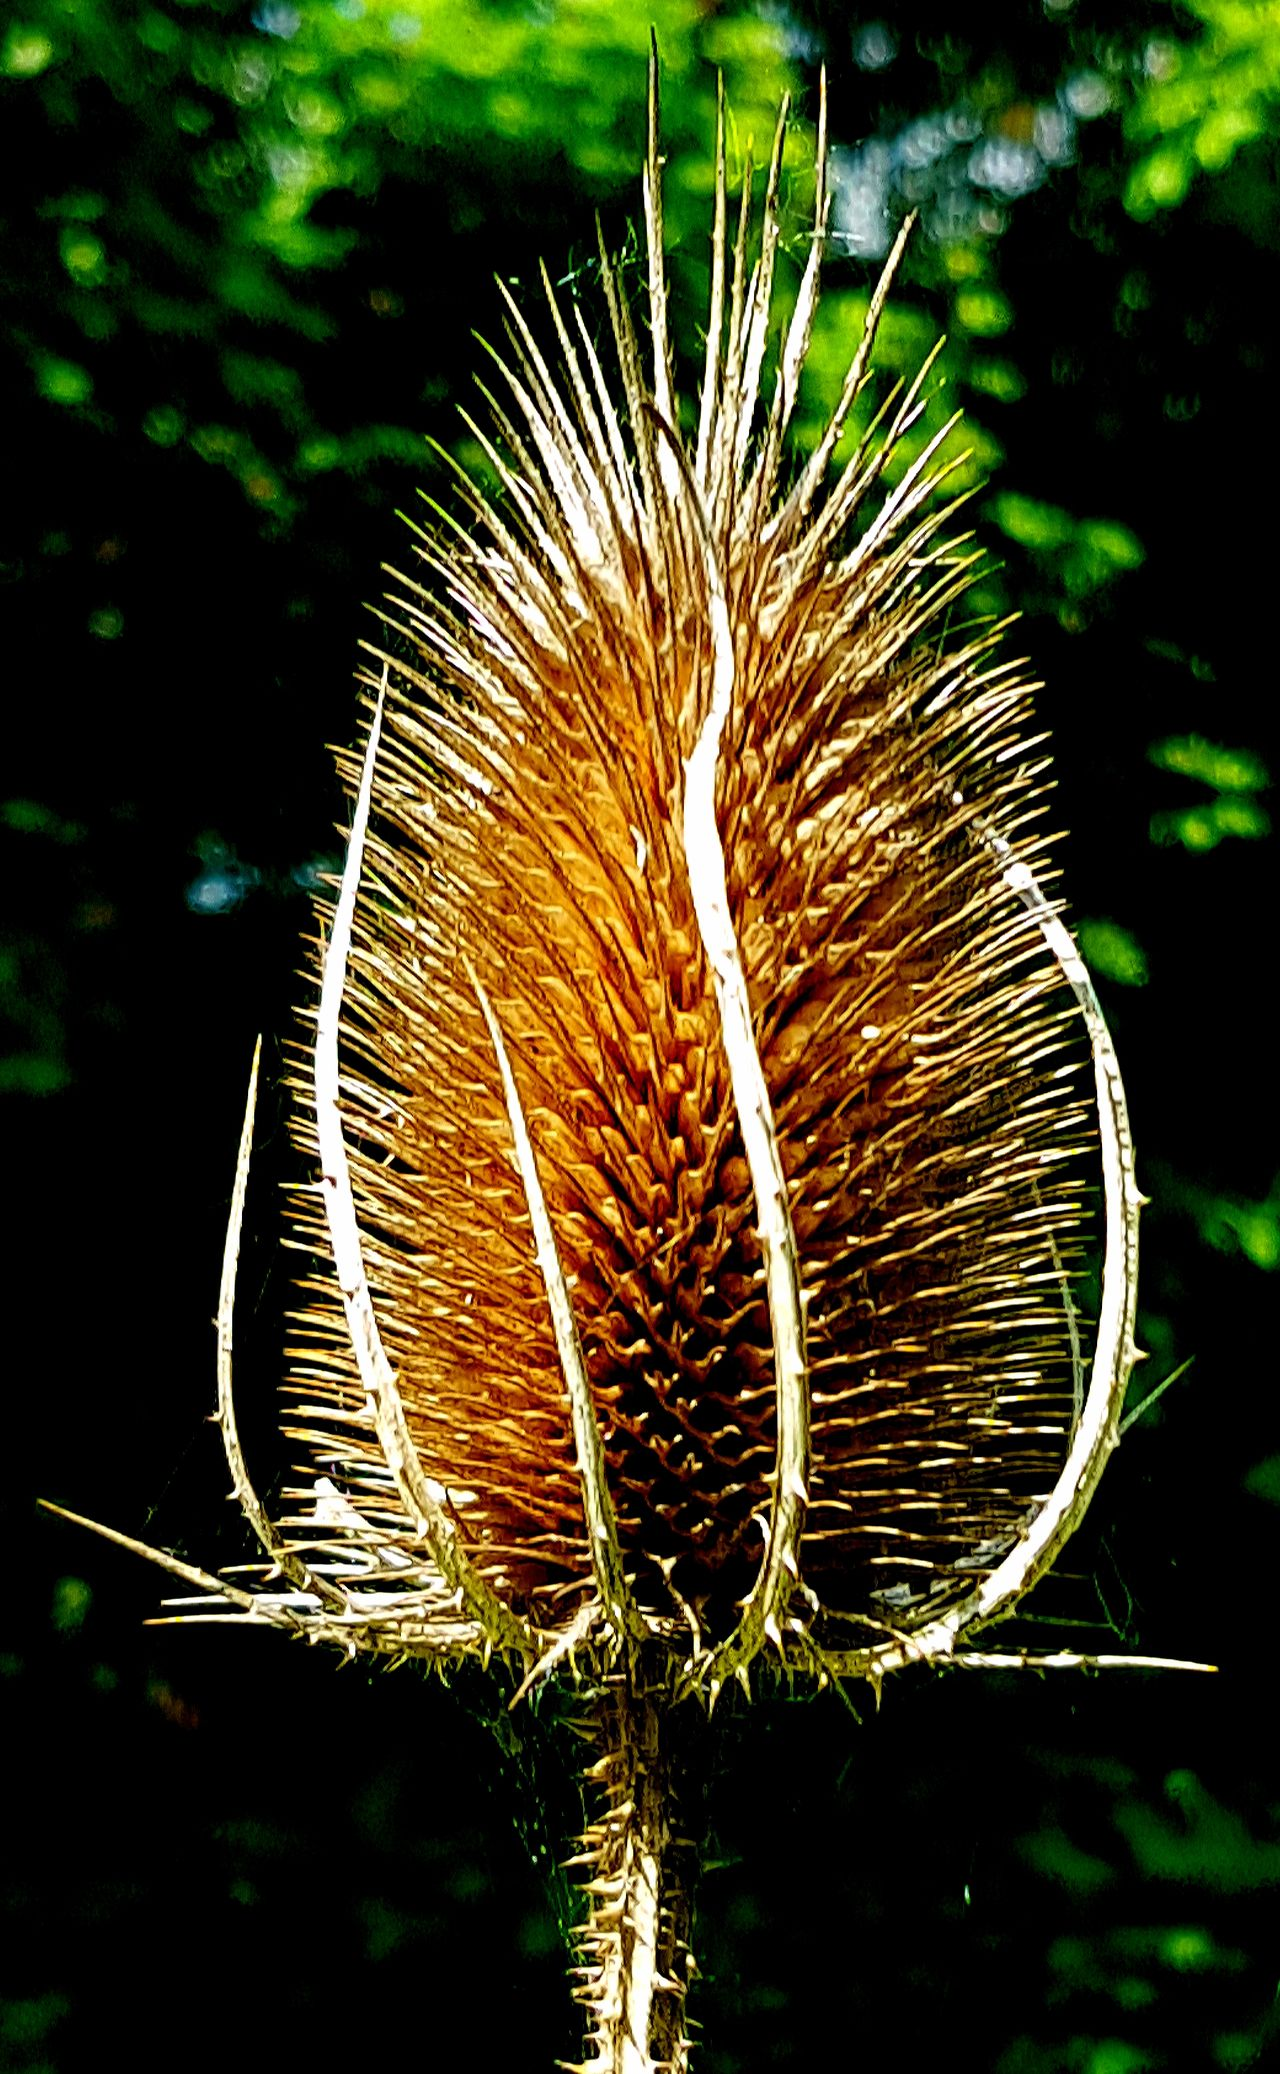 No People Outdoors Nature Close-up Beauty In Nature Day Flower Head Symmetry Teasels